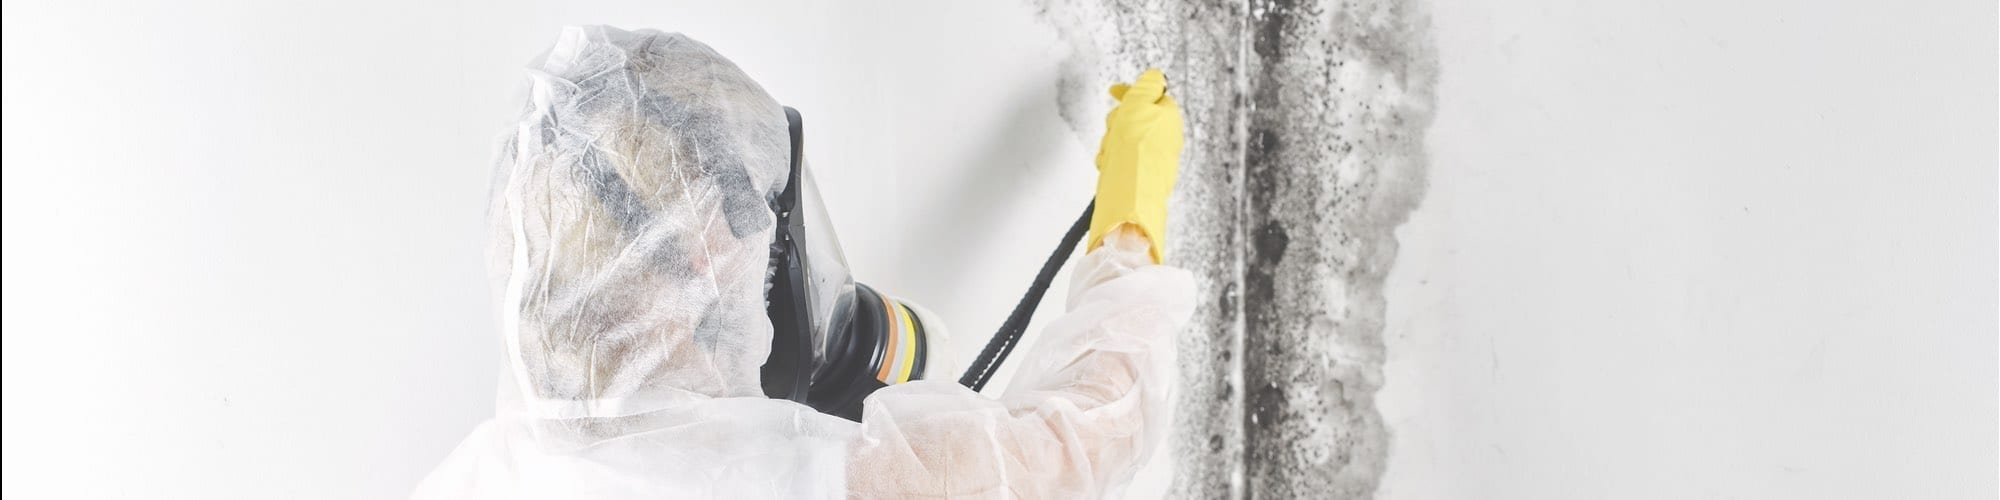 Cleaning Mold - Mold Control Information Series – Article #5